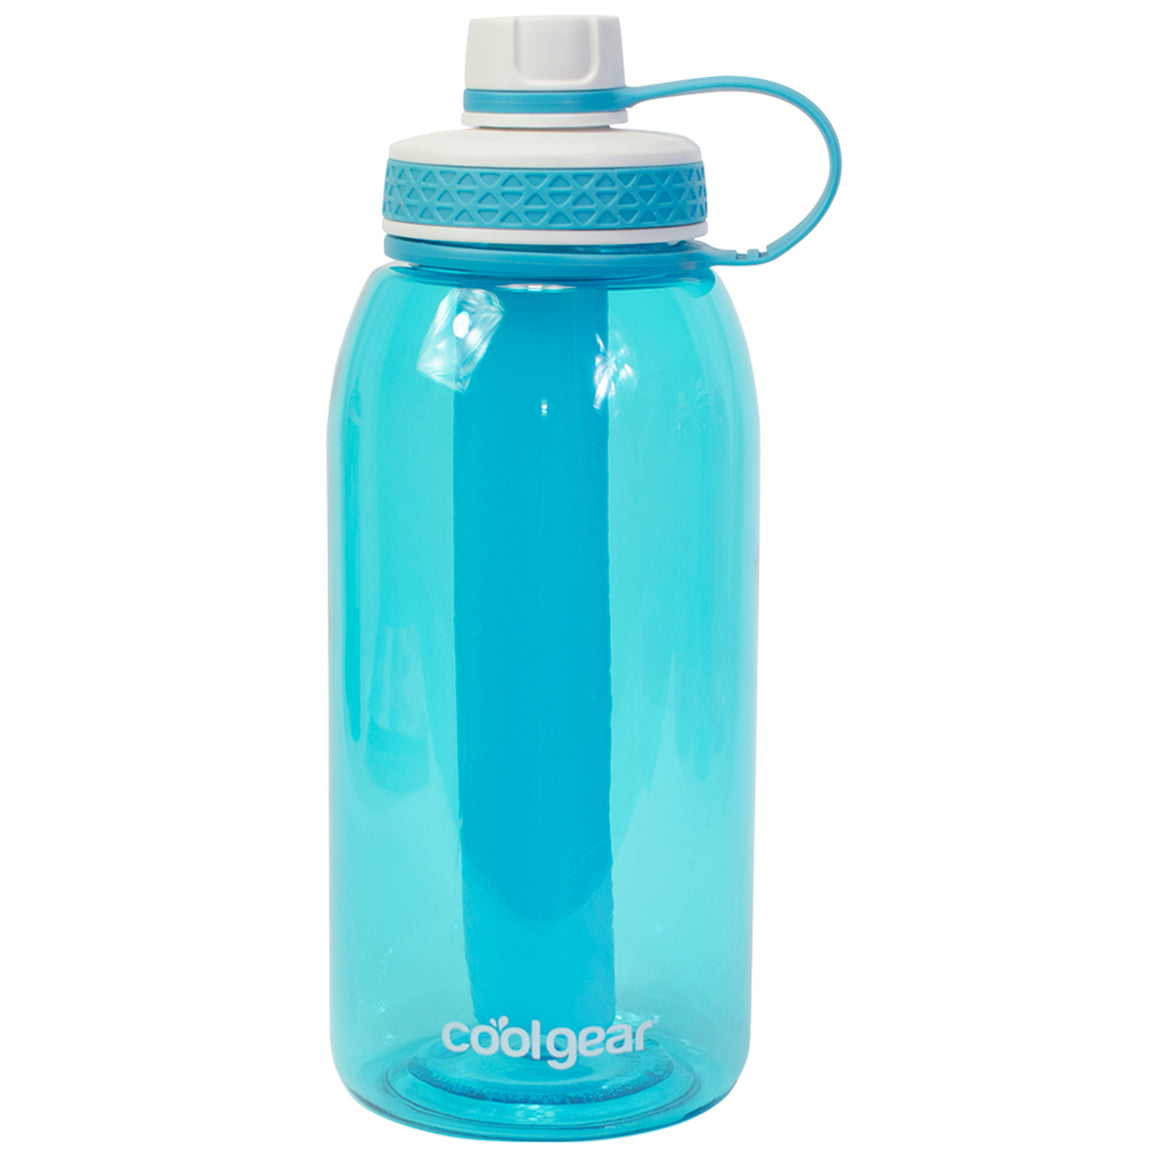 Smoke System 48 Oz Water Bottle at Cool Gear Water Bottles